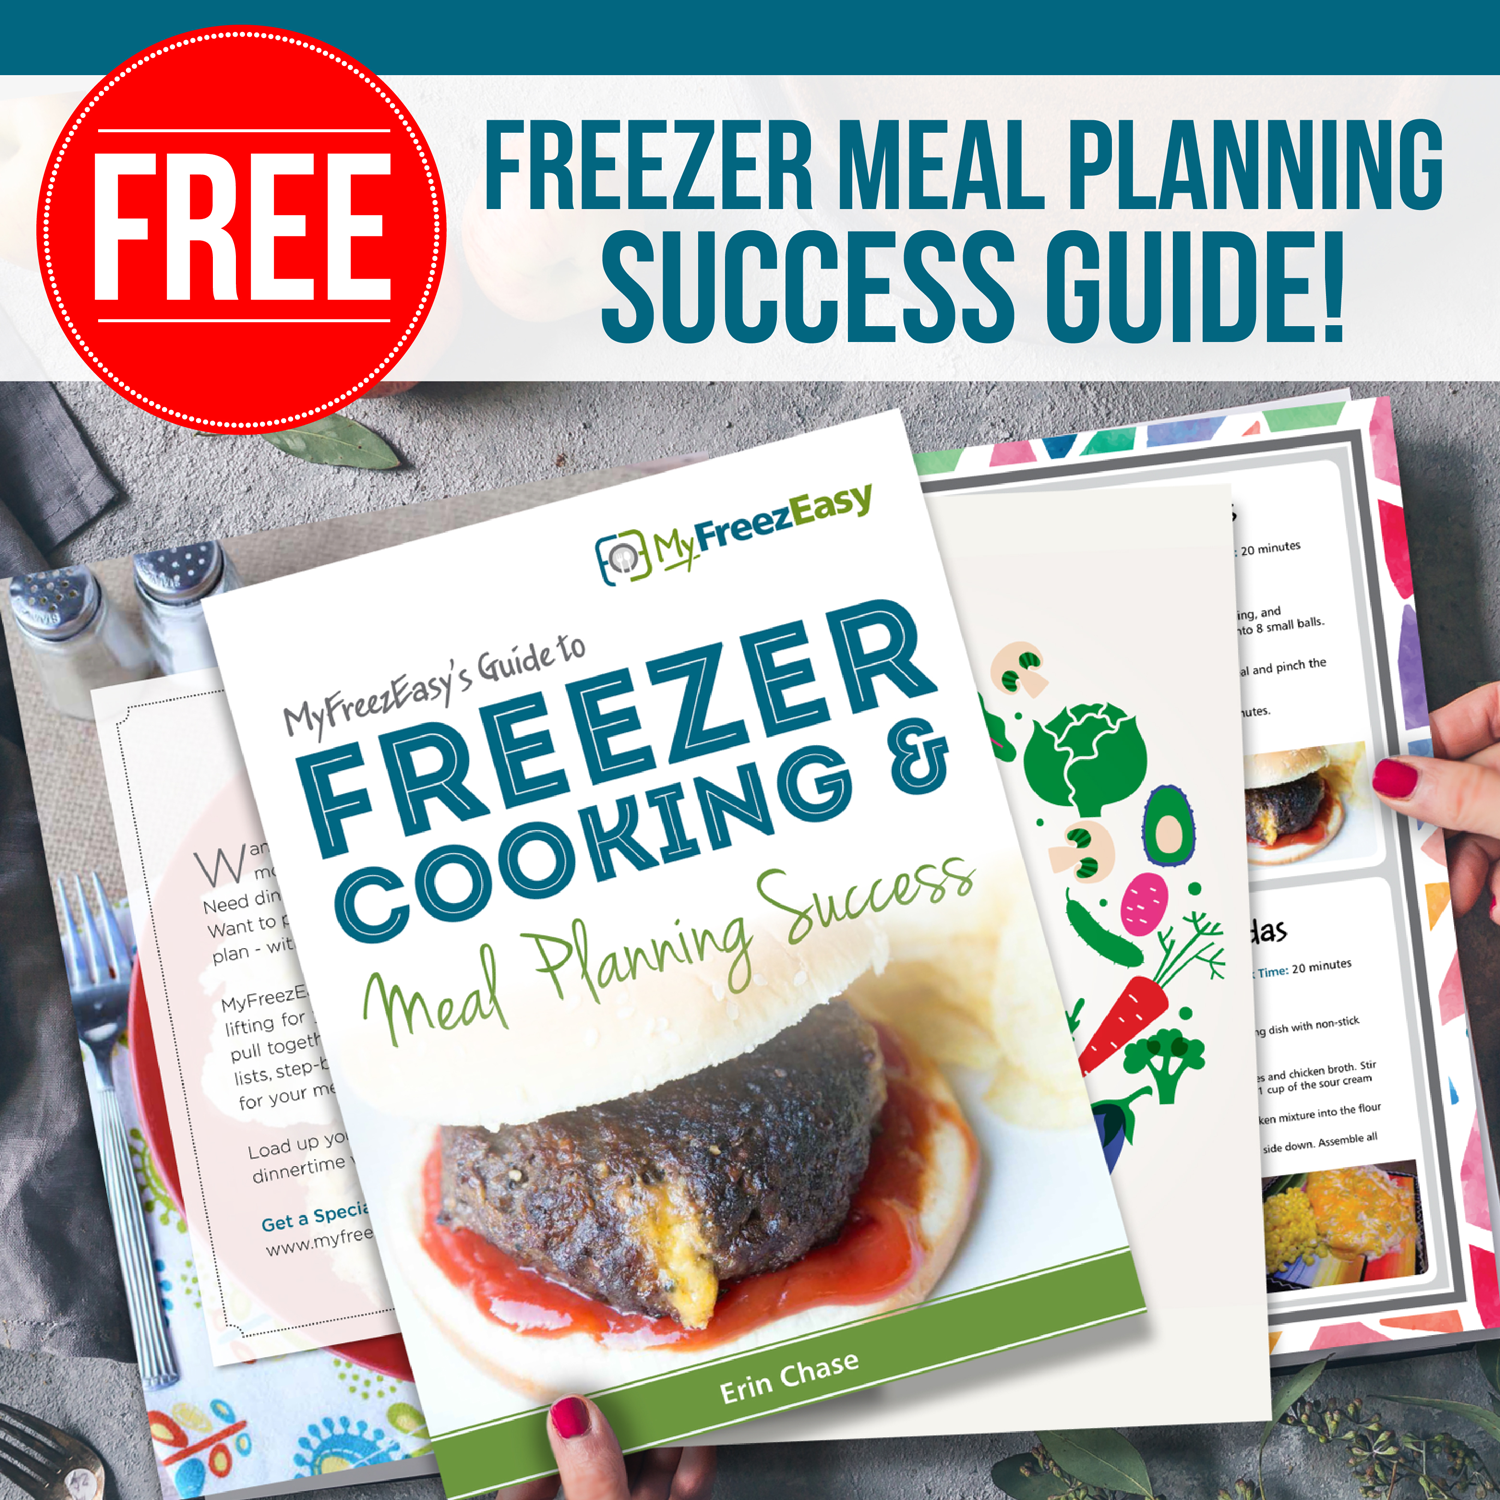 Meal Planning 101 Plus Save Money Each Week Money Bliss